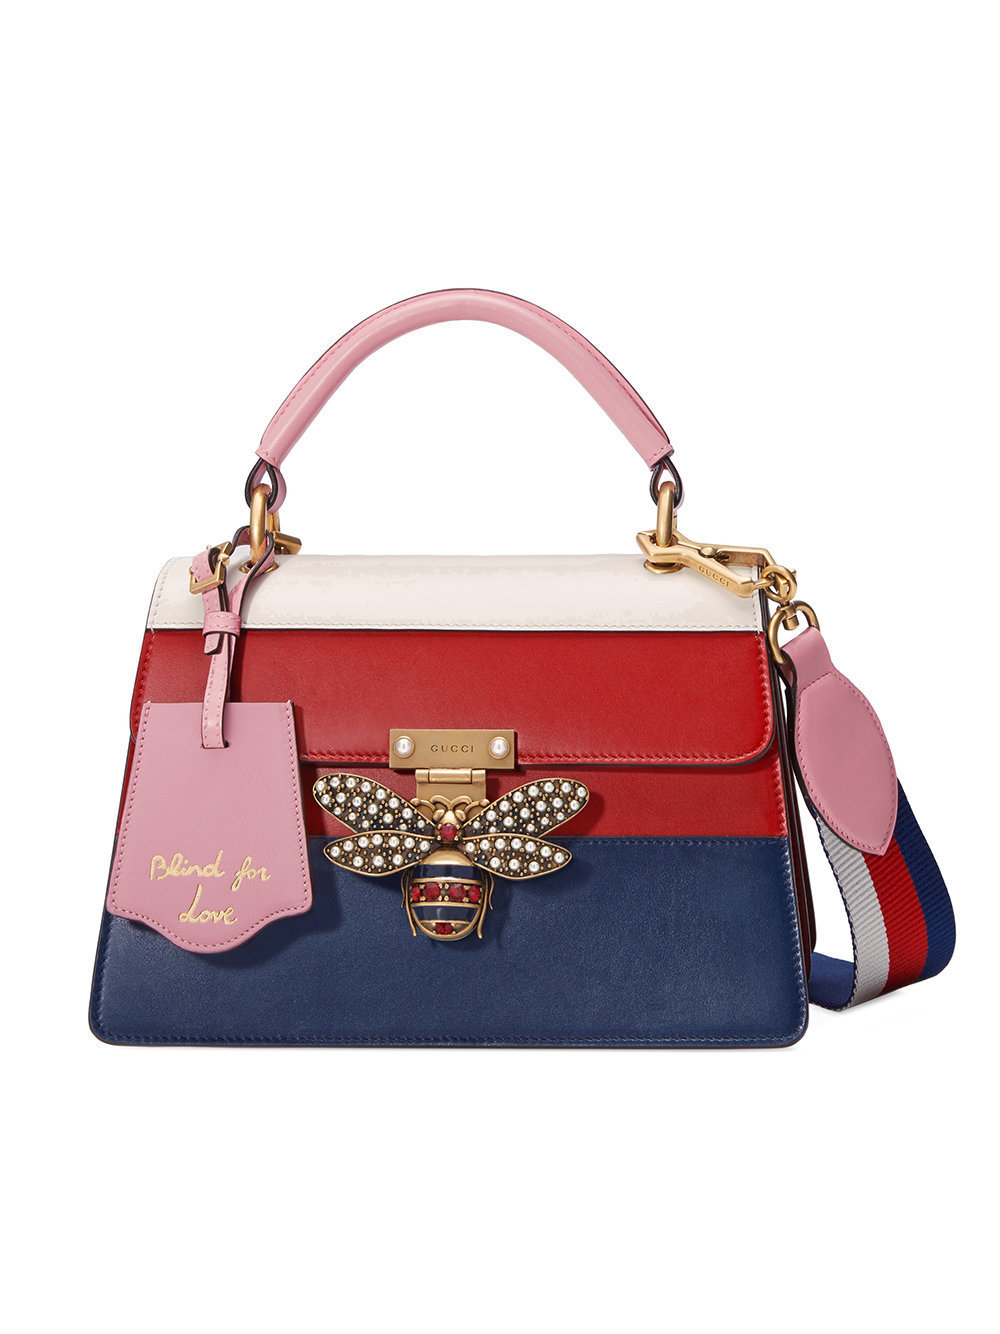 【gucci】 バッグ 新作Queen Margaret ハンドバッグ